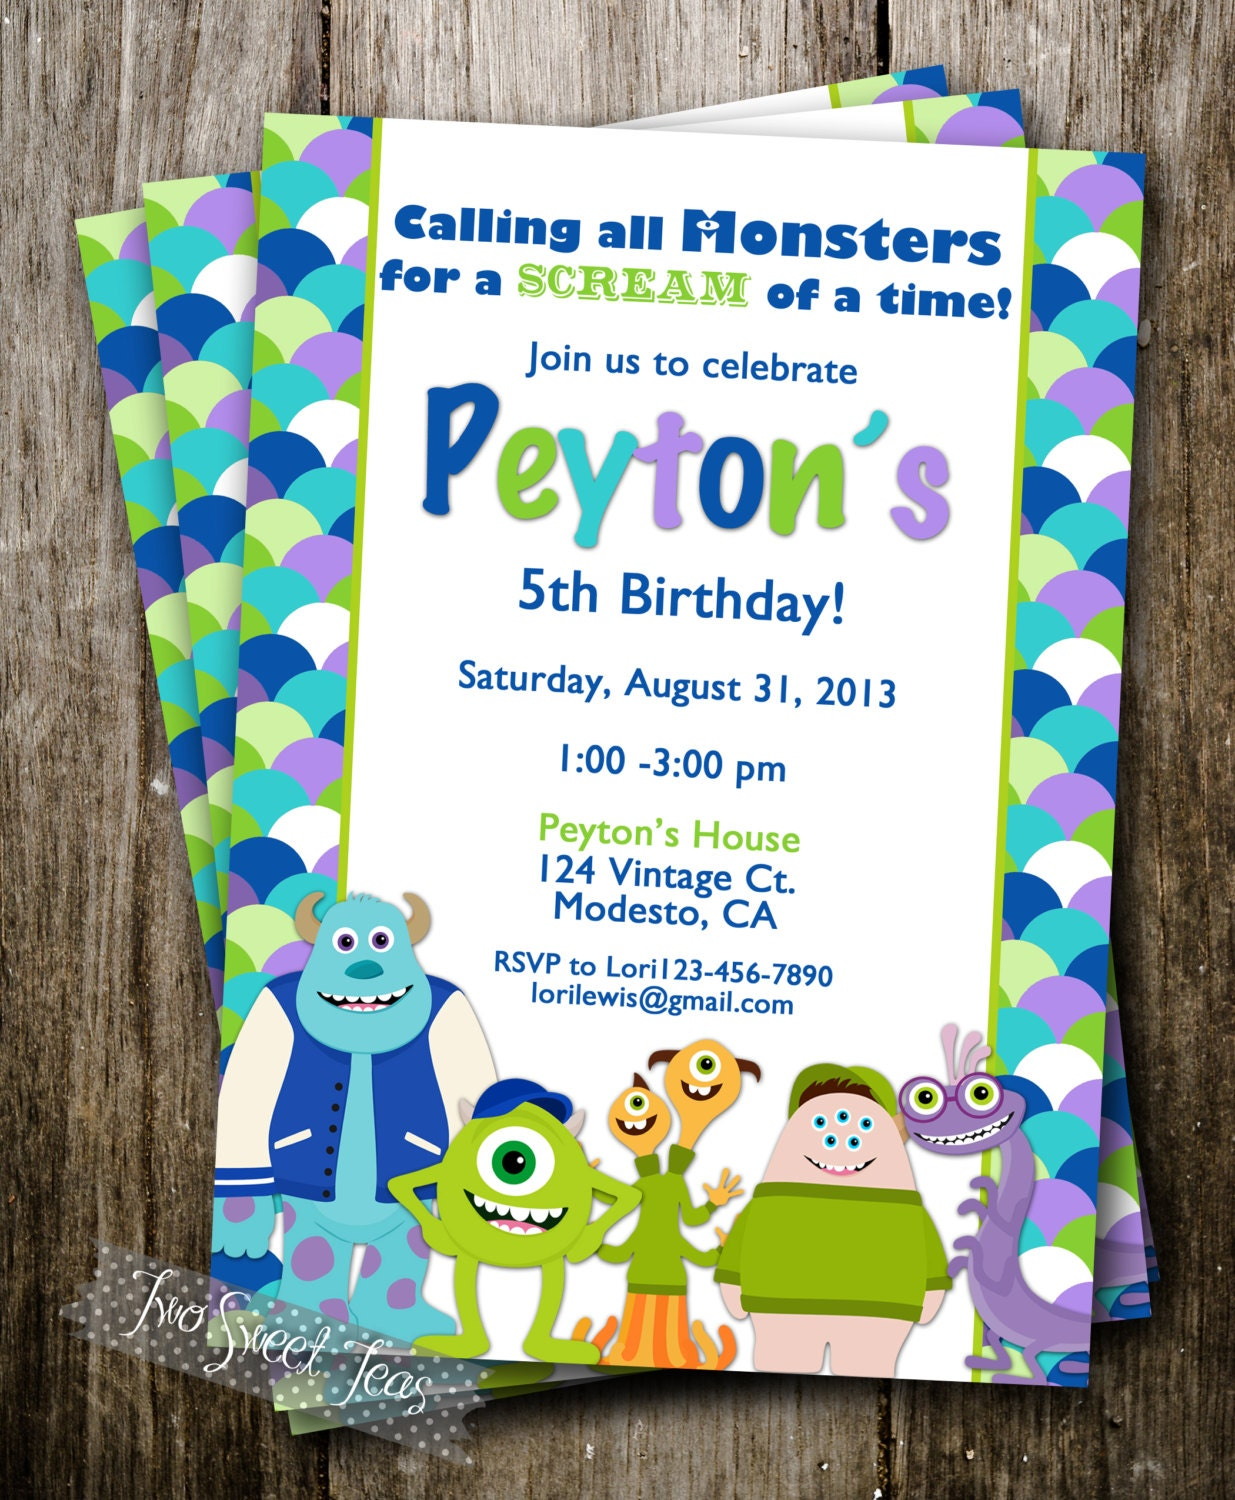 Monsters Inc Invitation with great invitation sample